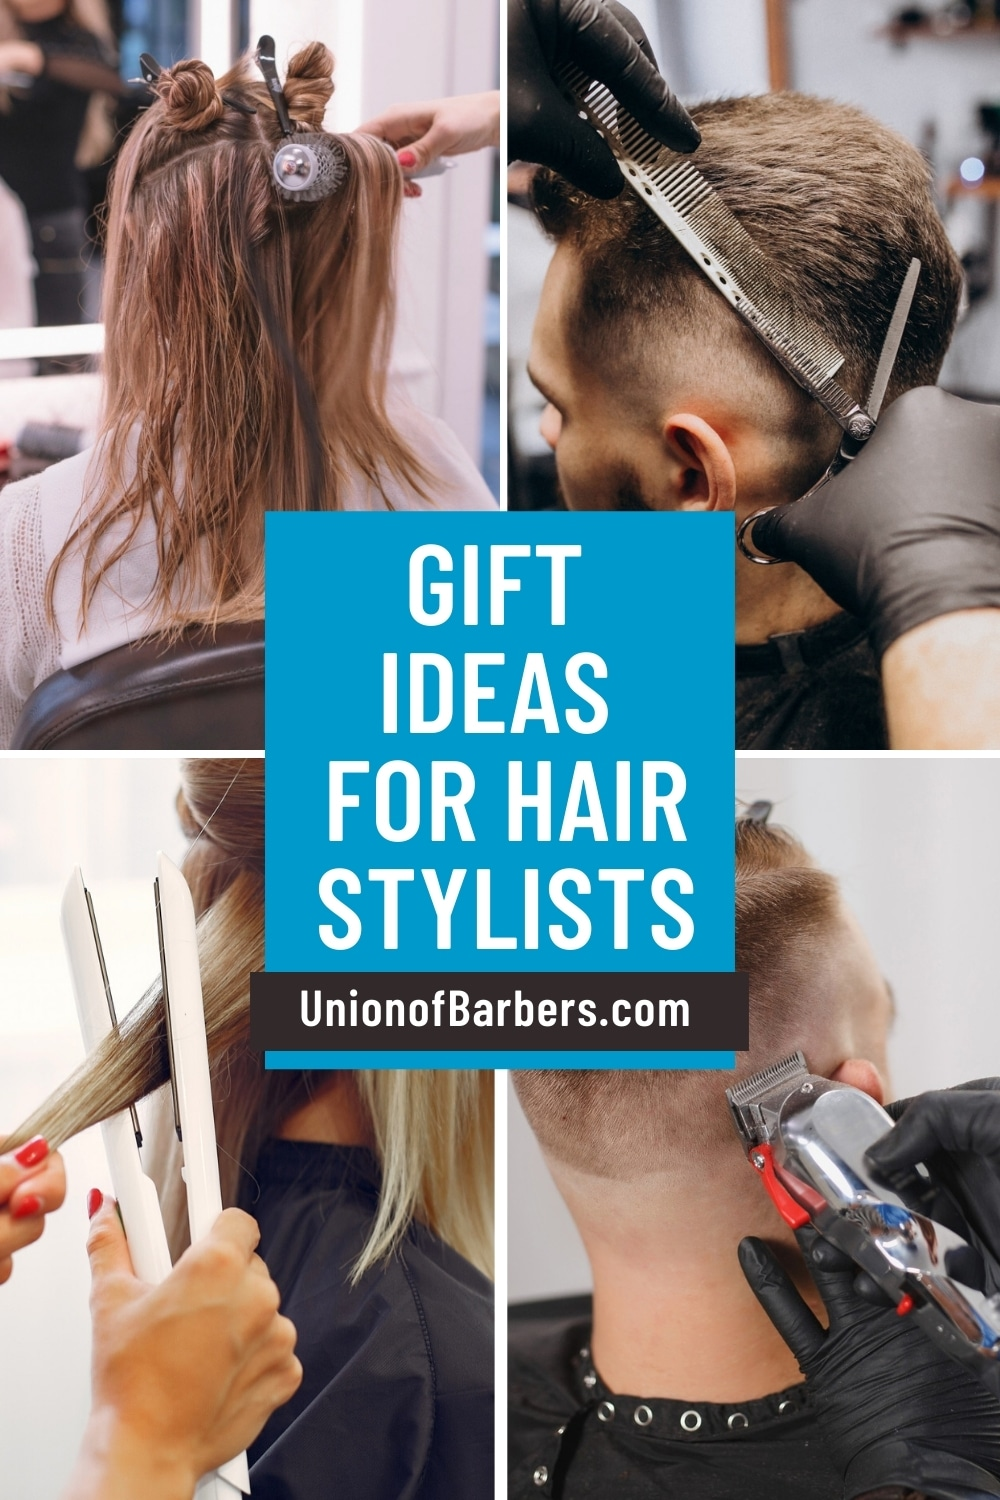 Gift Ideas for Hair Stylists